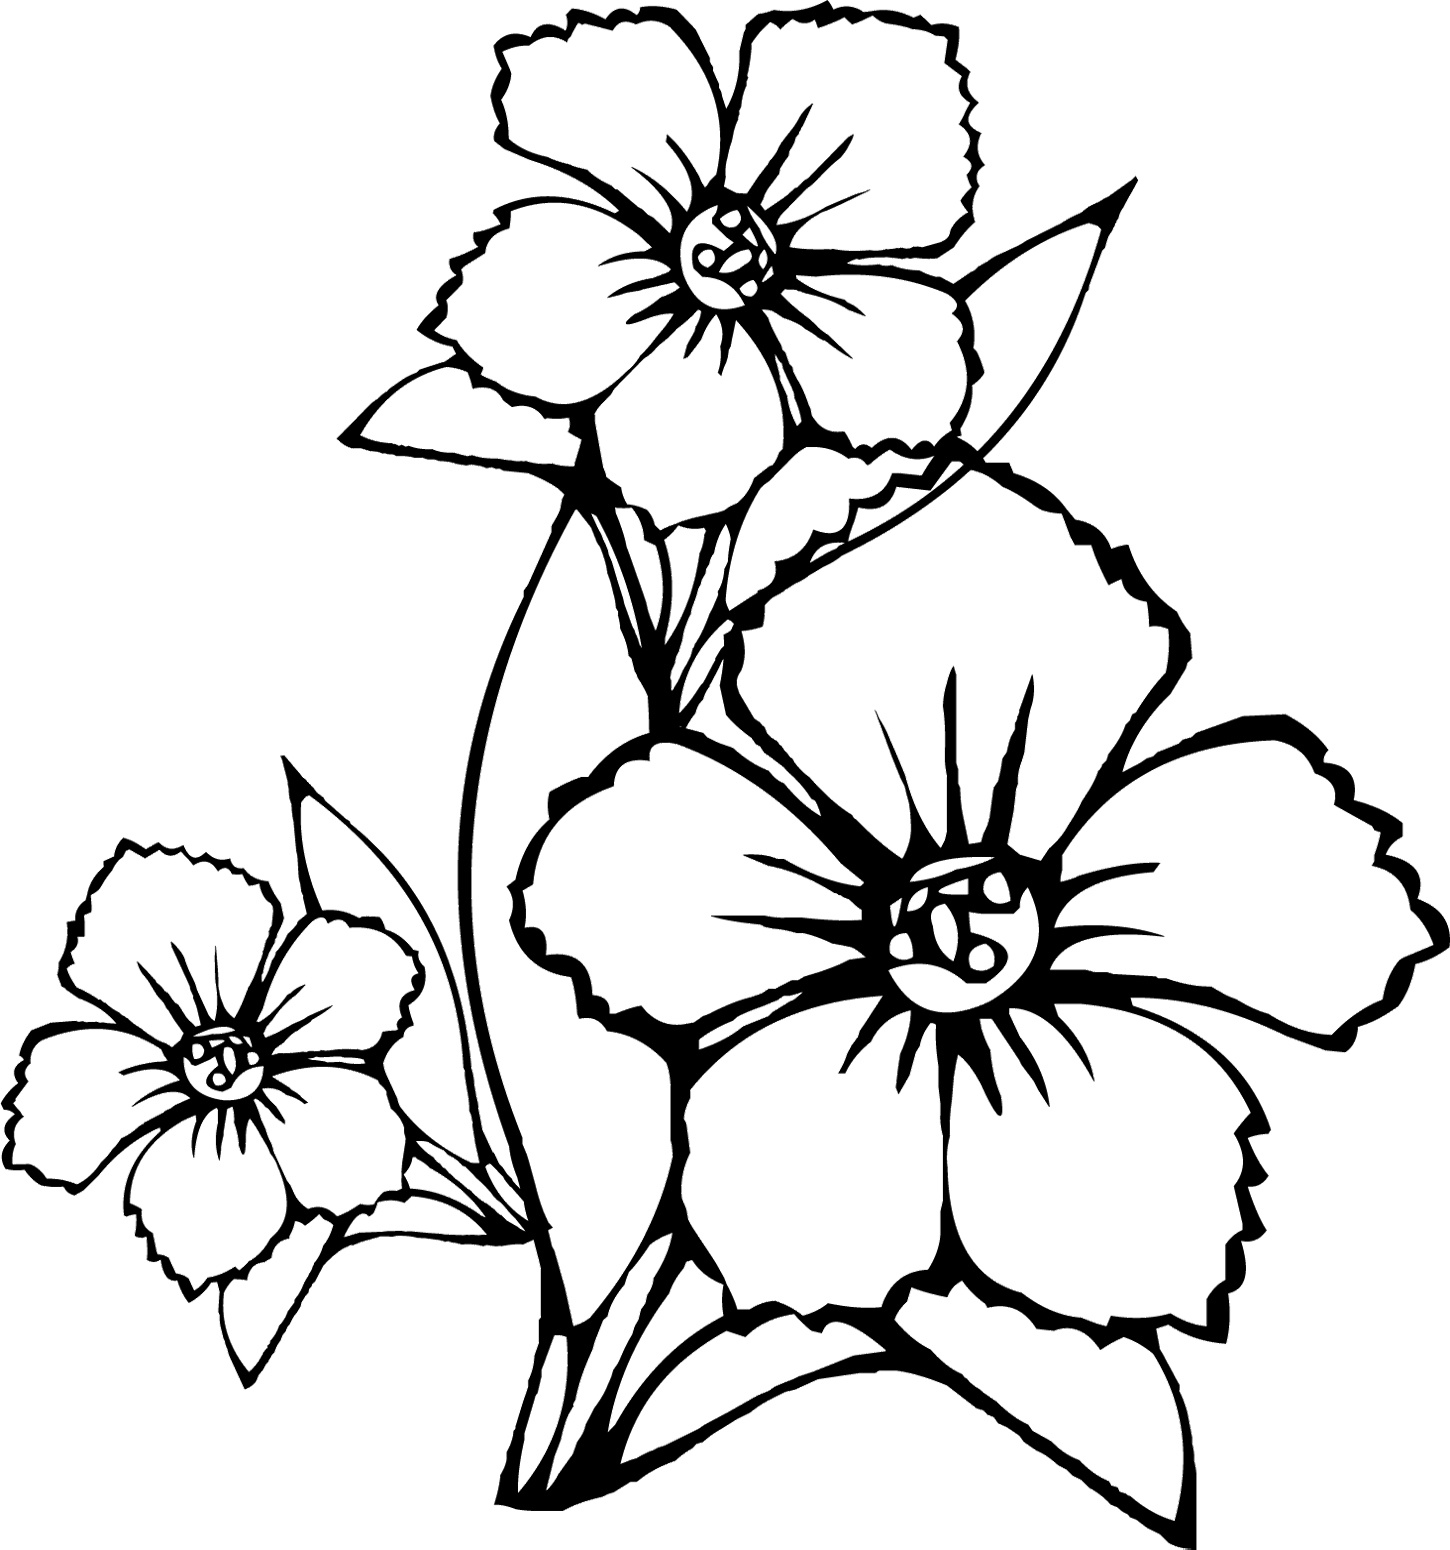 cute flower coloring pages pretty flower drawing at getdrawings free download coloring pages cute flower